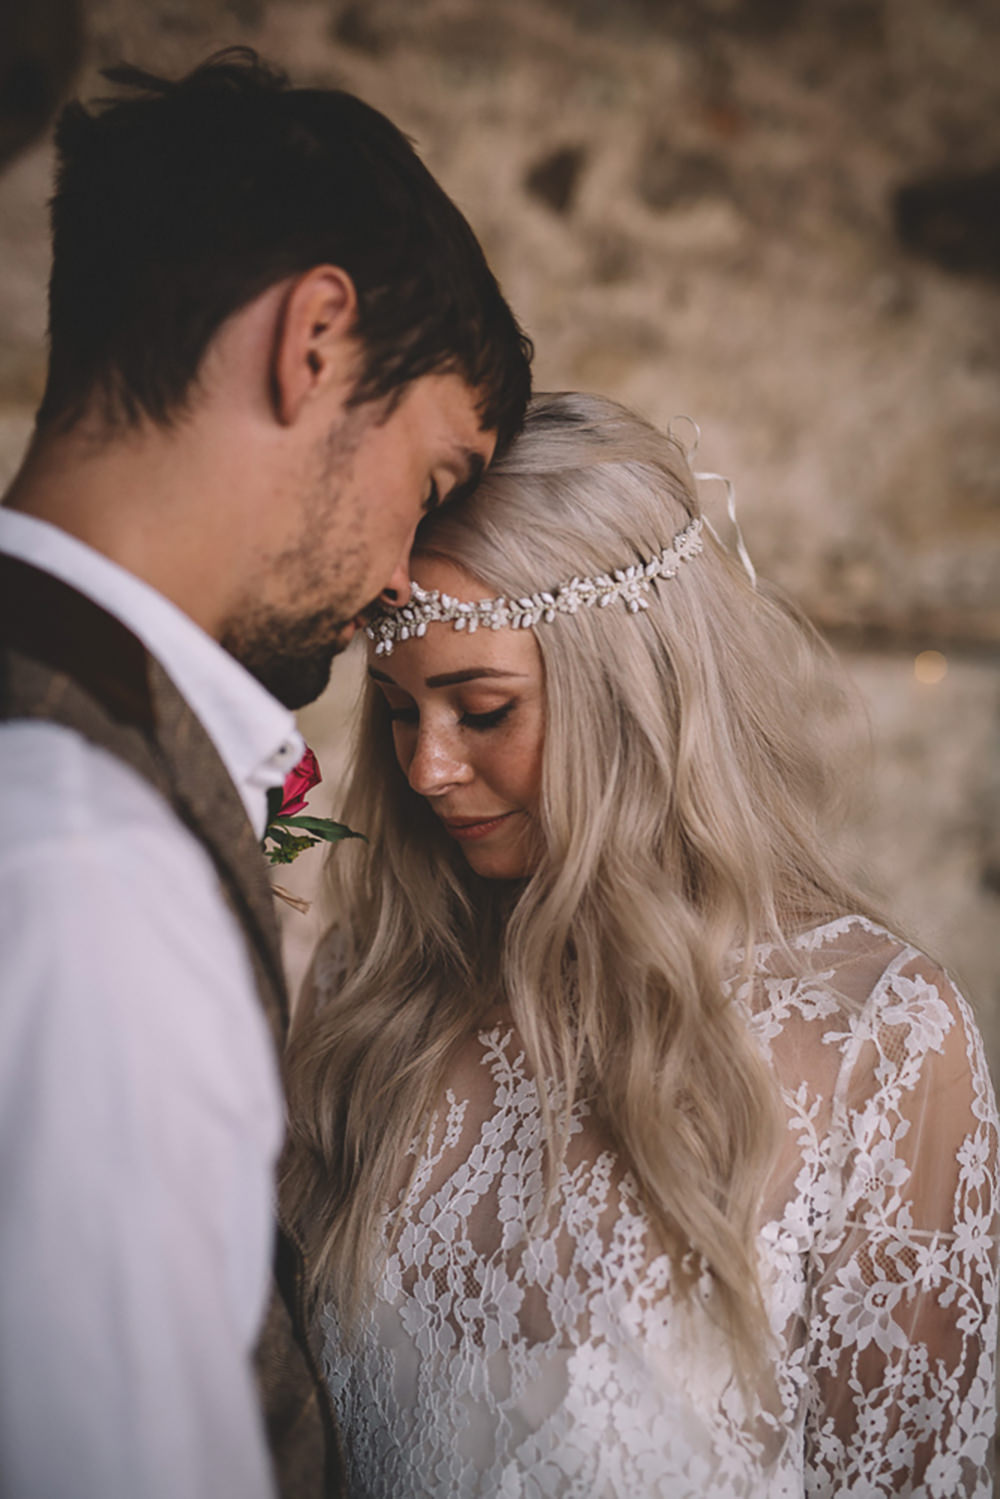 Bride Bridal Accessory Hair Headdress Forehead Bohemian Long Hair Waves Style Free Spirited Wedding Ideas Woodland Lumiere Photographic